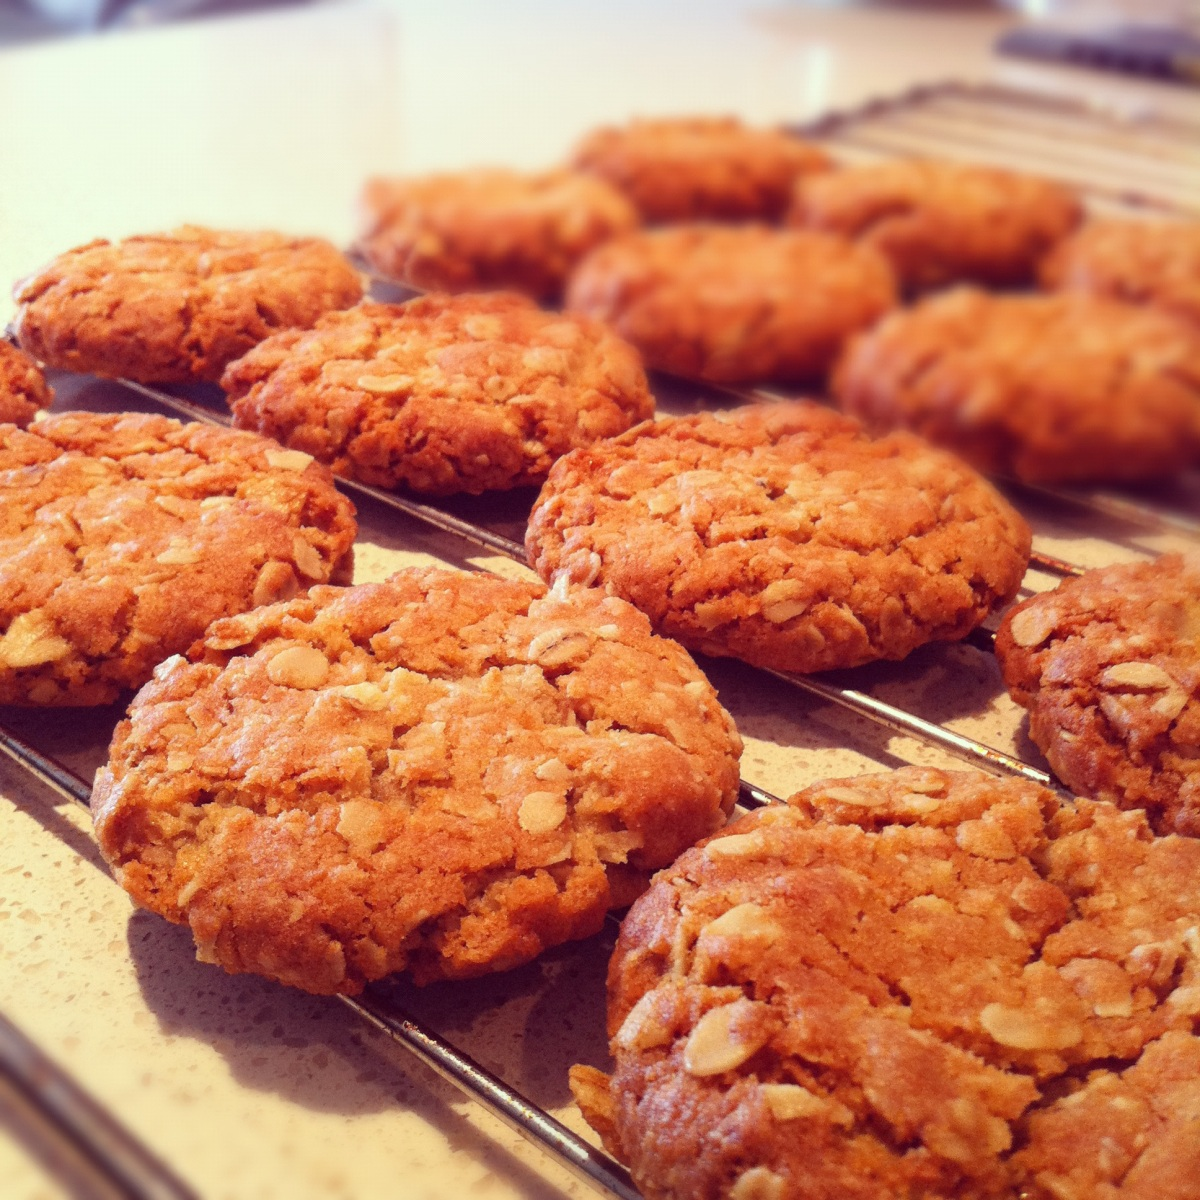 The perfect Anzac biscuit recipe